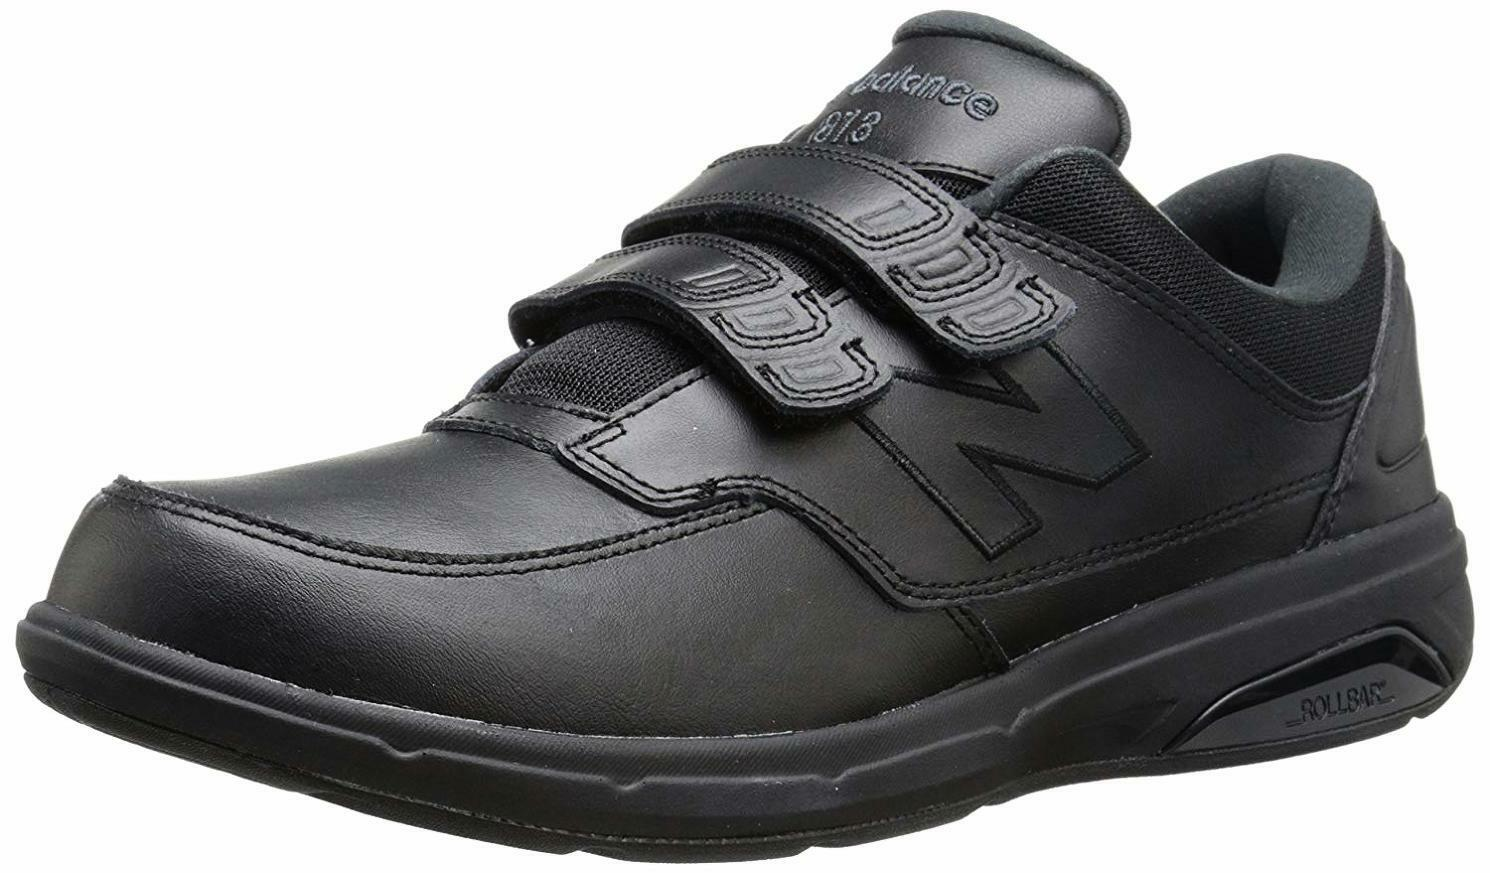 New Balance Men's MW813V1 Hook and Loop Walking shoes - Choose SZ color